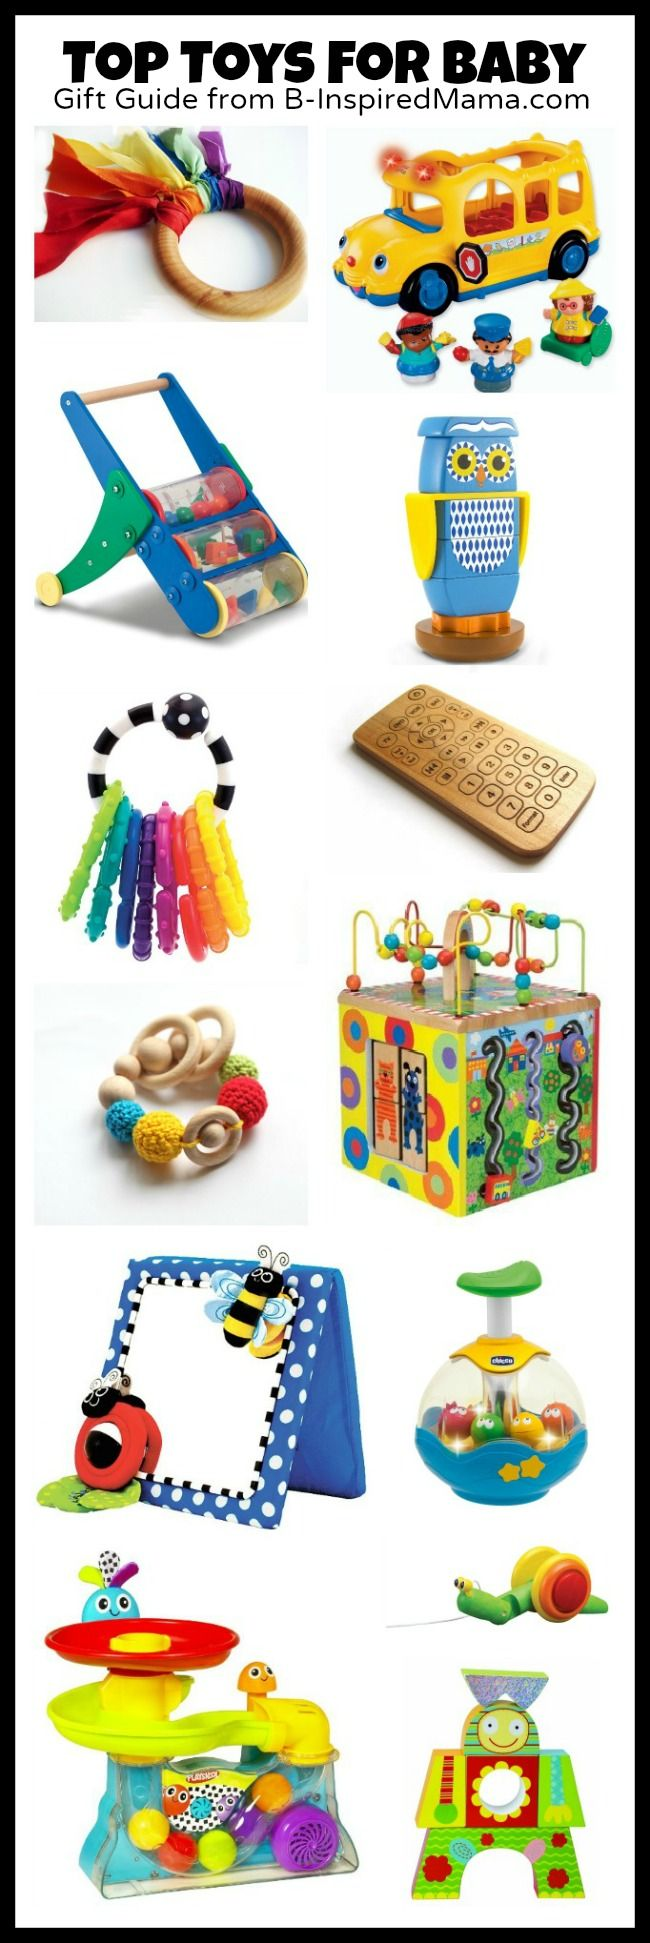 Toys for Babies [Plus Huge Holiday Gift Guide] AND a GIVEAWAY for a Melissa & Doug Push Toy!!! B-InspiredMama.com